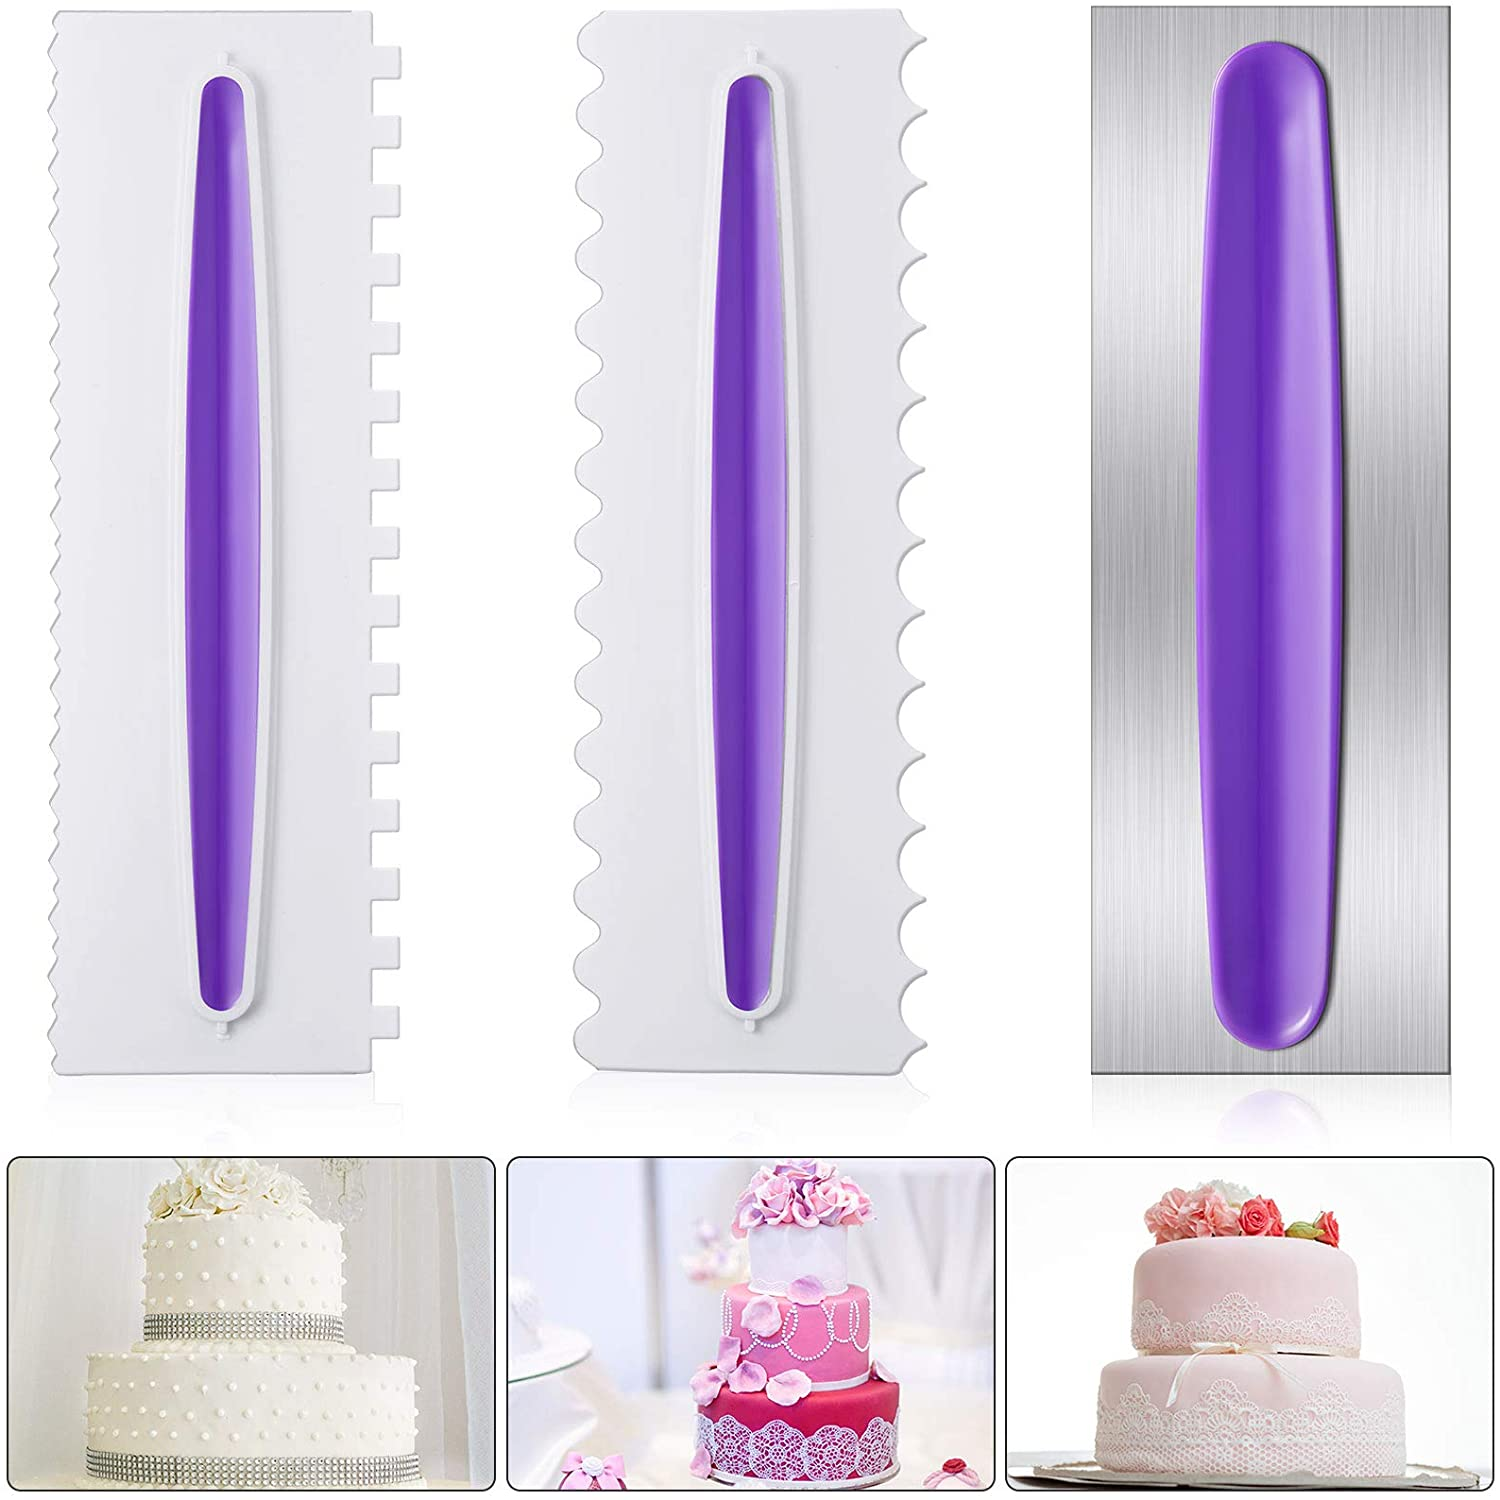 3 Pieces Cake Scraper Cake Decorating Comb Set, Stainless Steel Icing Smoother Comb Plastic Cake Edge Side Smoother Decorating Tools Cream Scraper for Mousse Butter Cream Cake Decoration